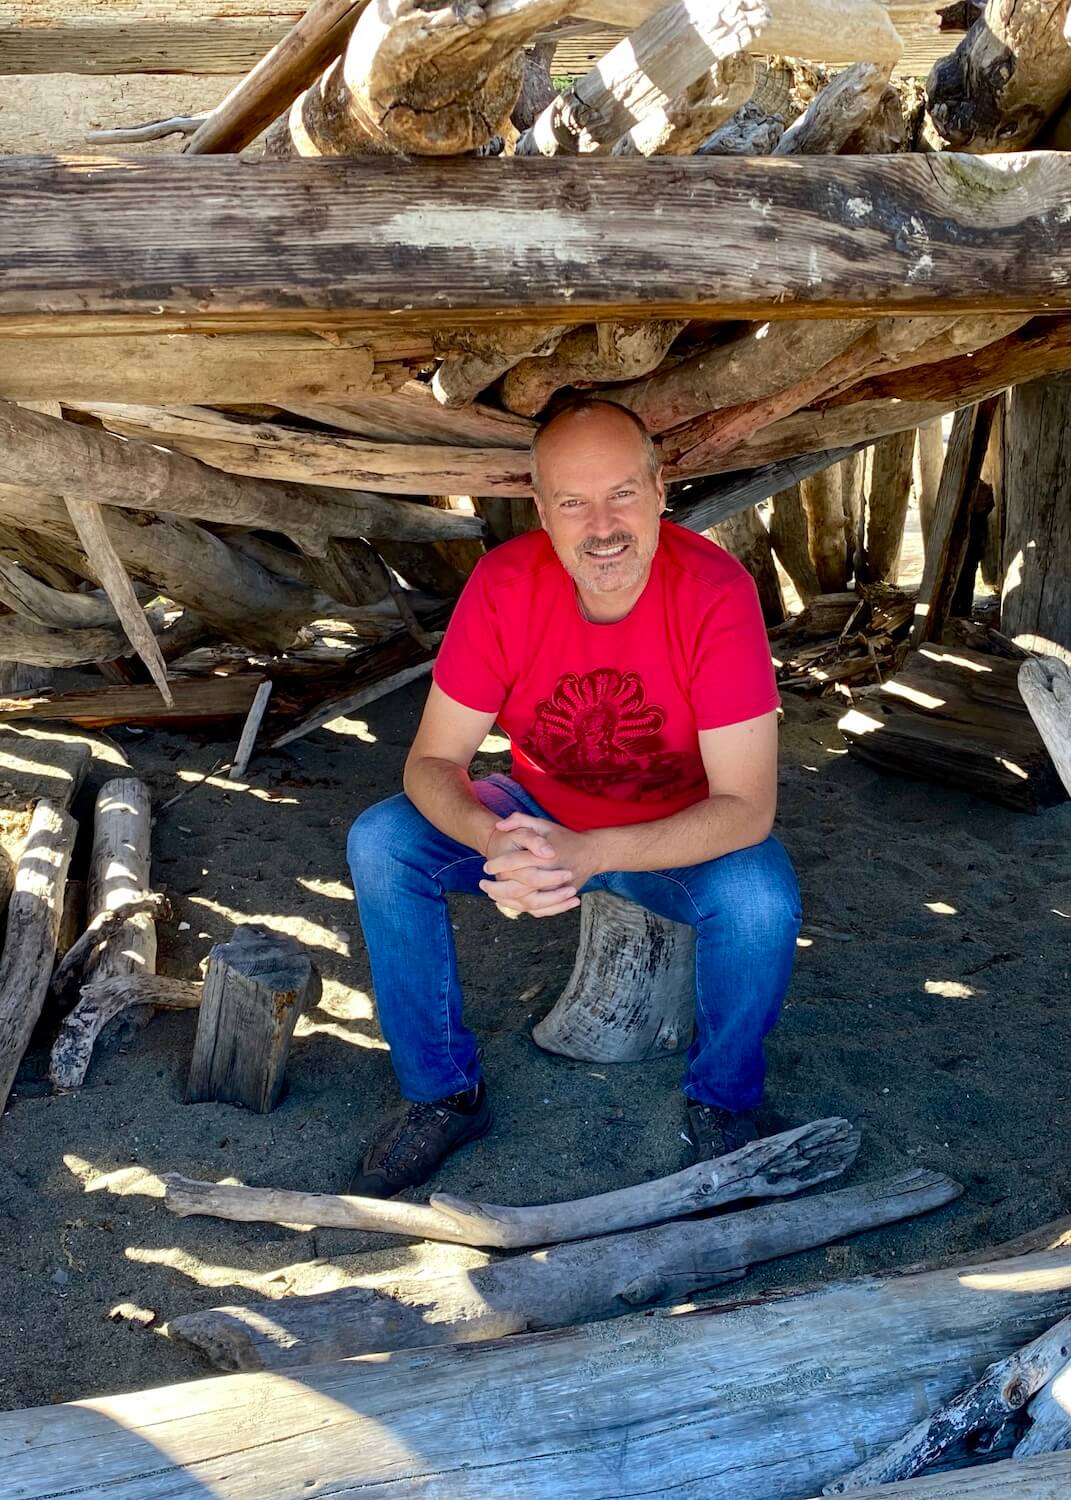 A selfie photo of Matthew Kessi on a Whidbey Island beach. He's smiling and wearing a bright red t-shirt underneath a shelter made from drift logs.